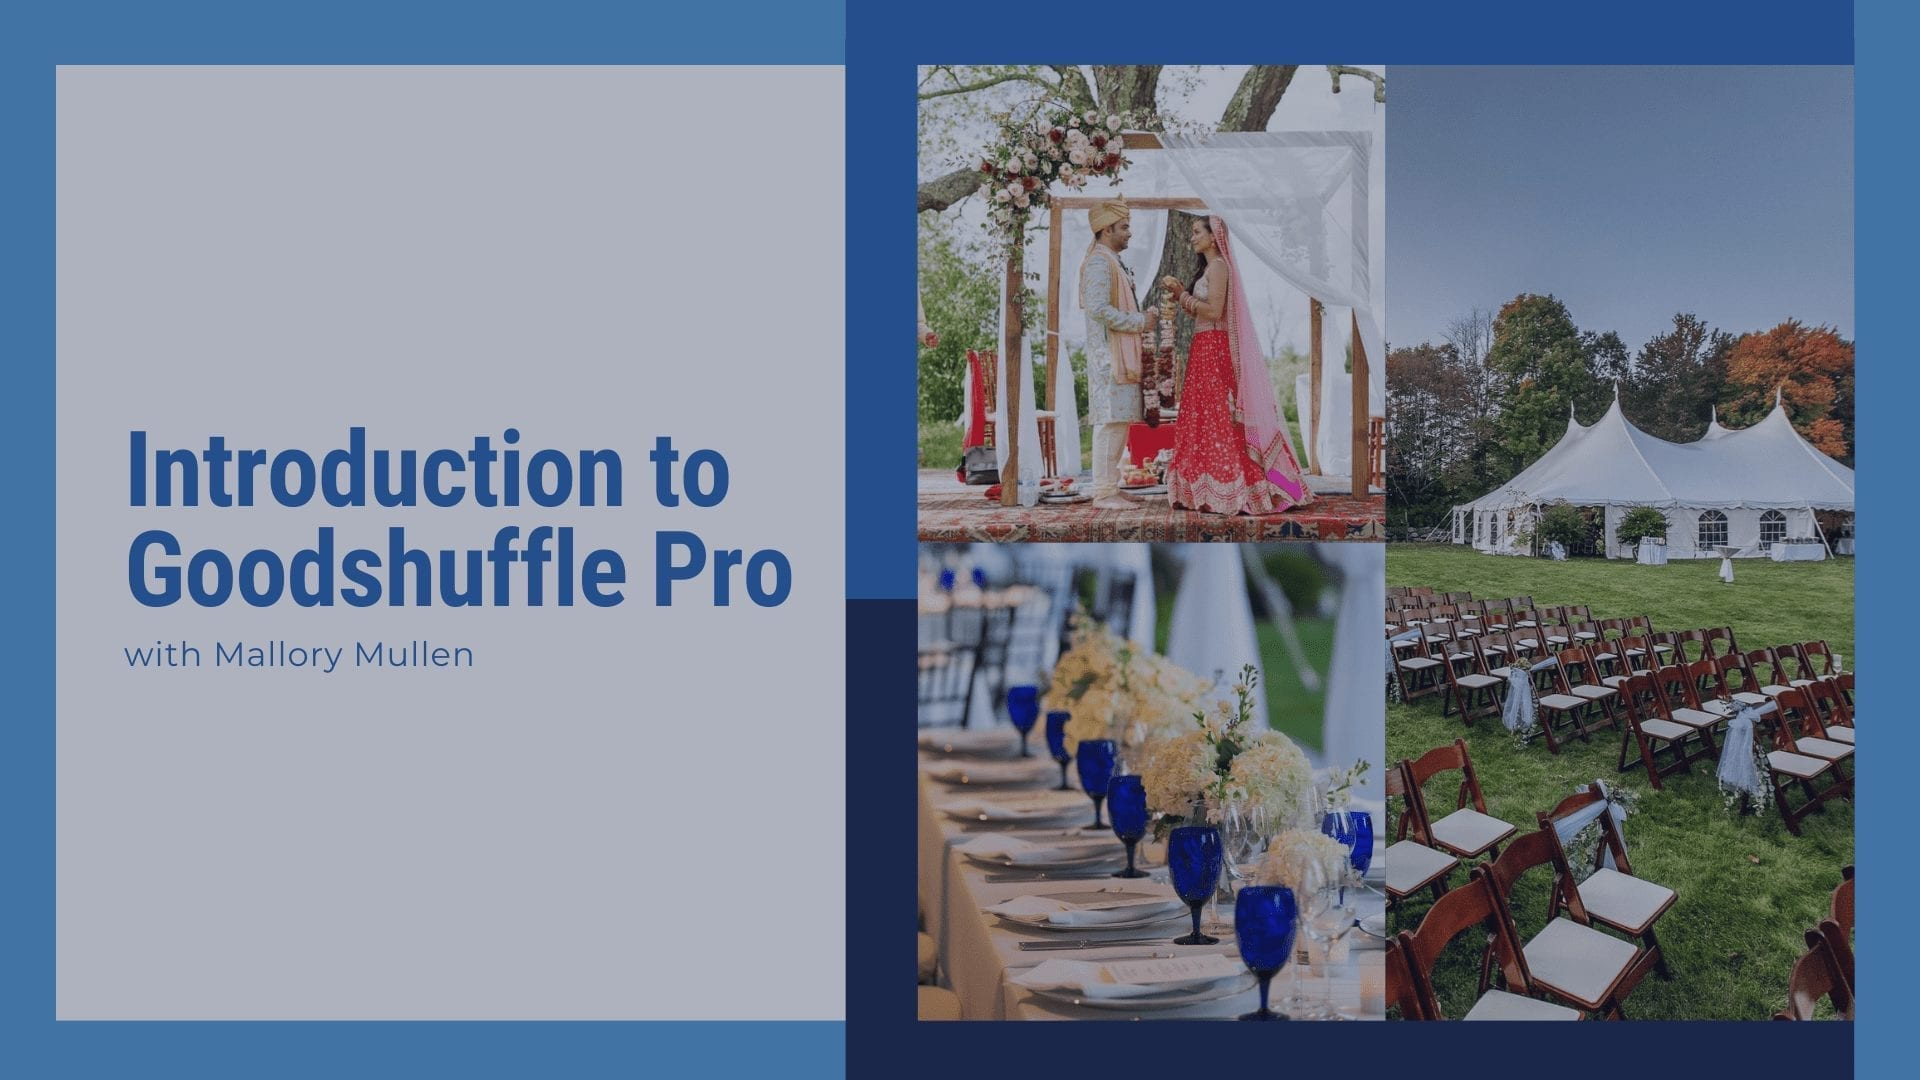 Introduction to Goodshuffle Pro for event rental companies